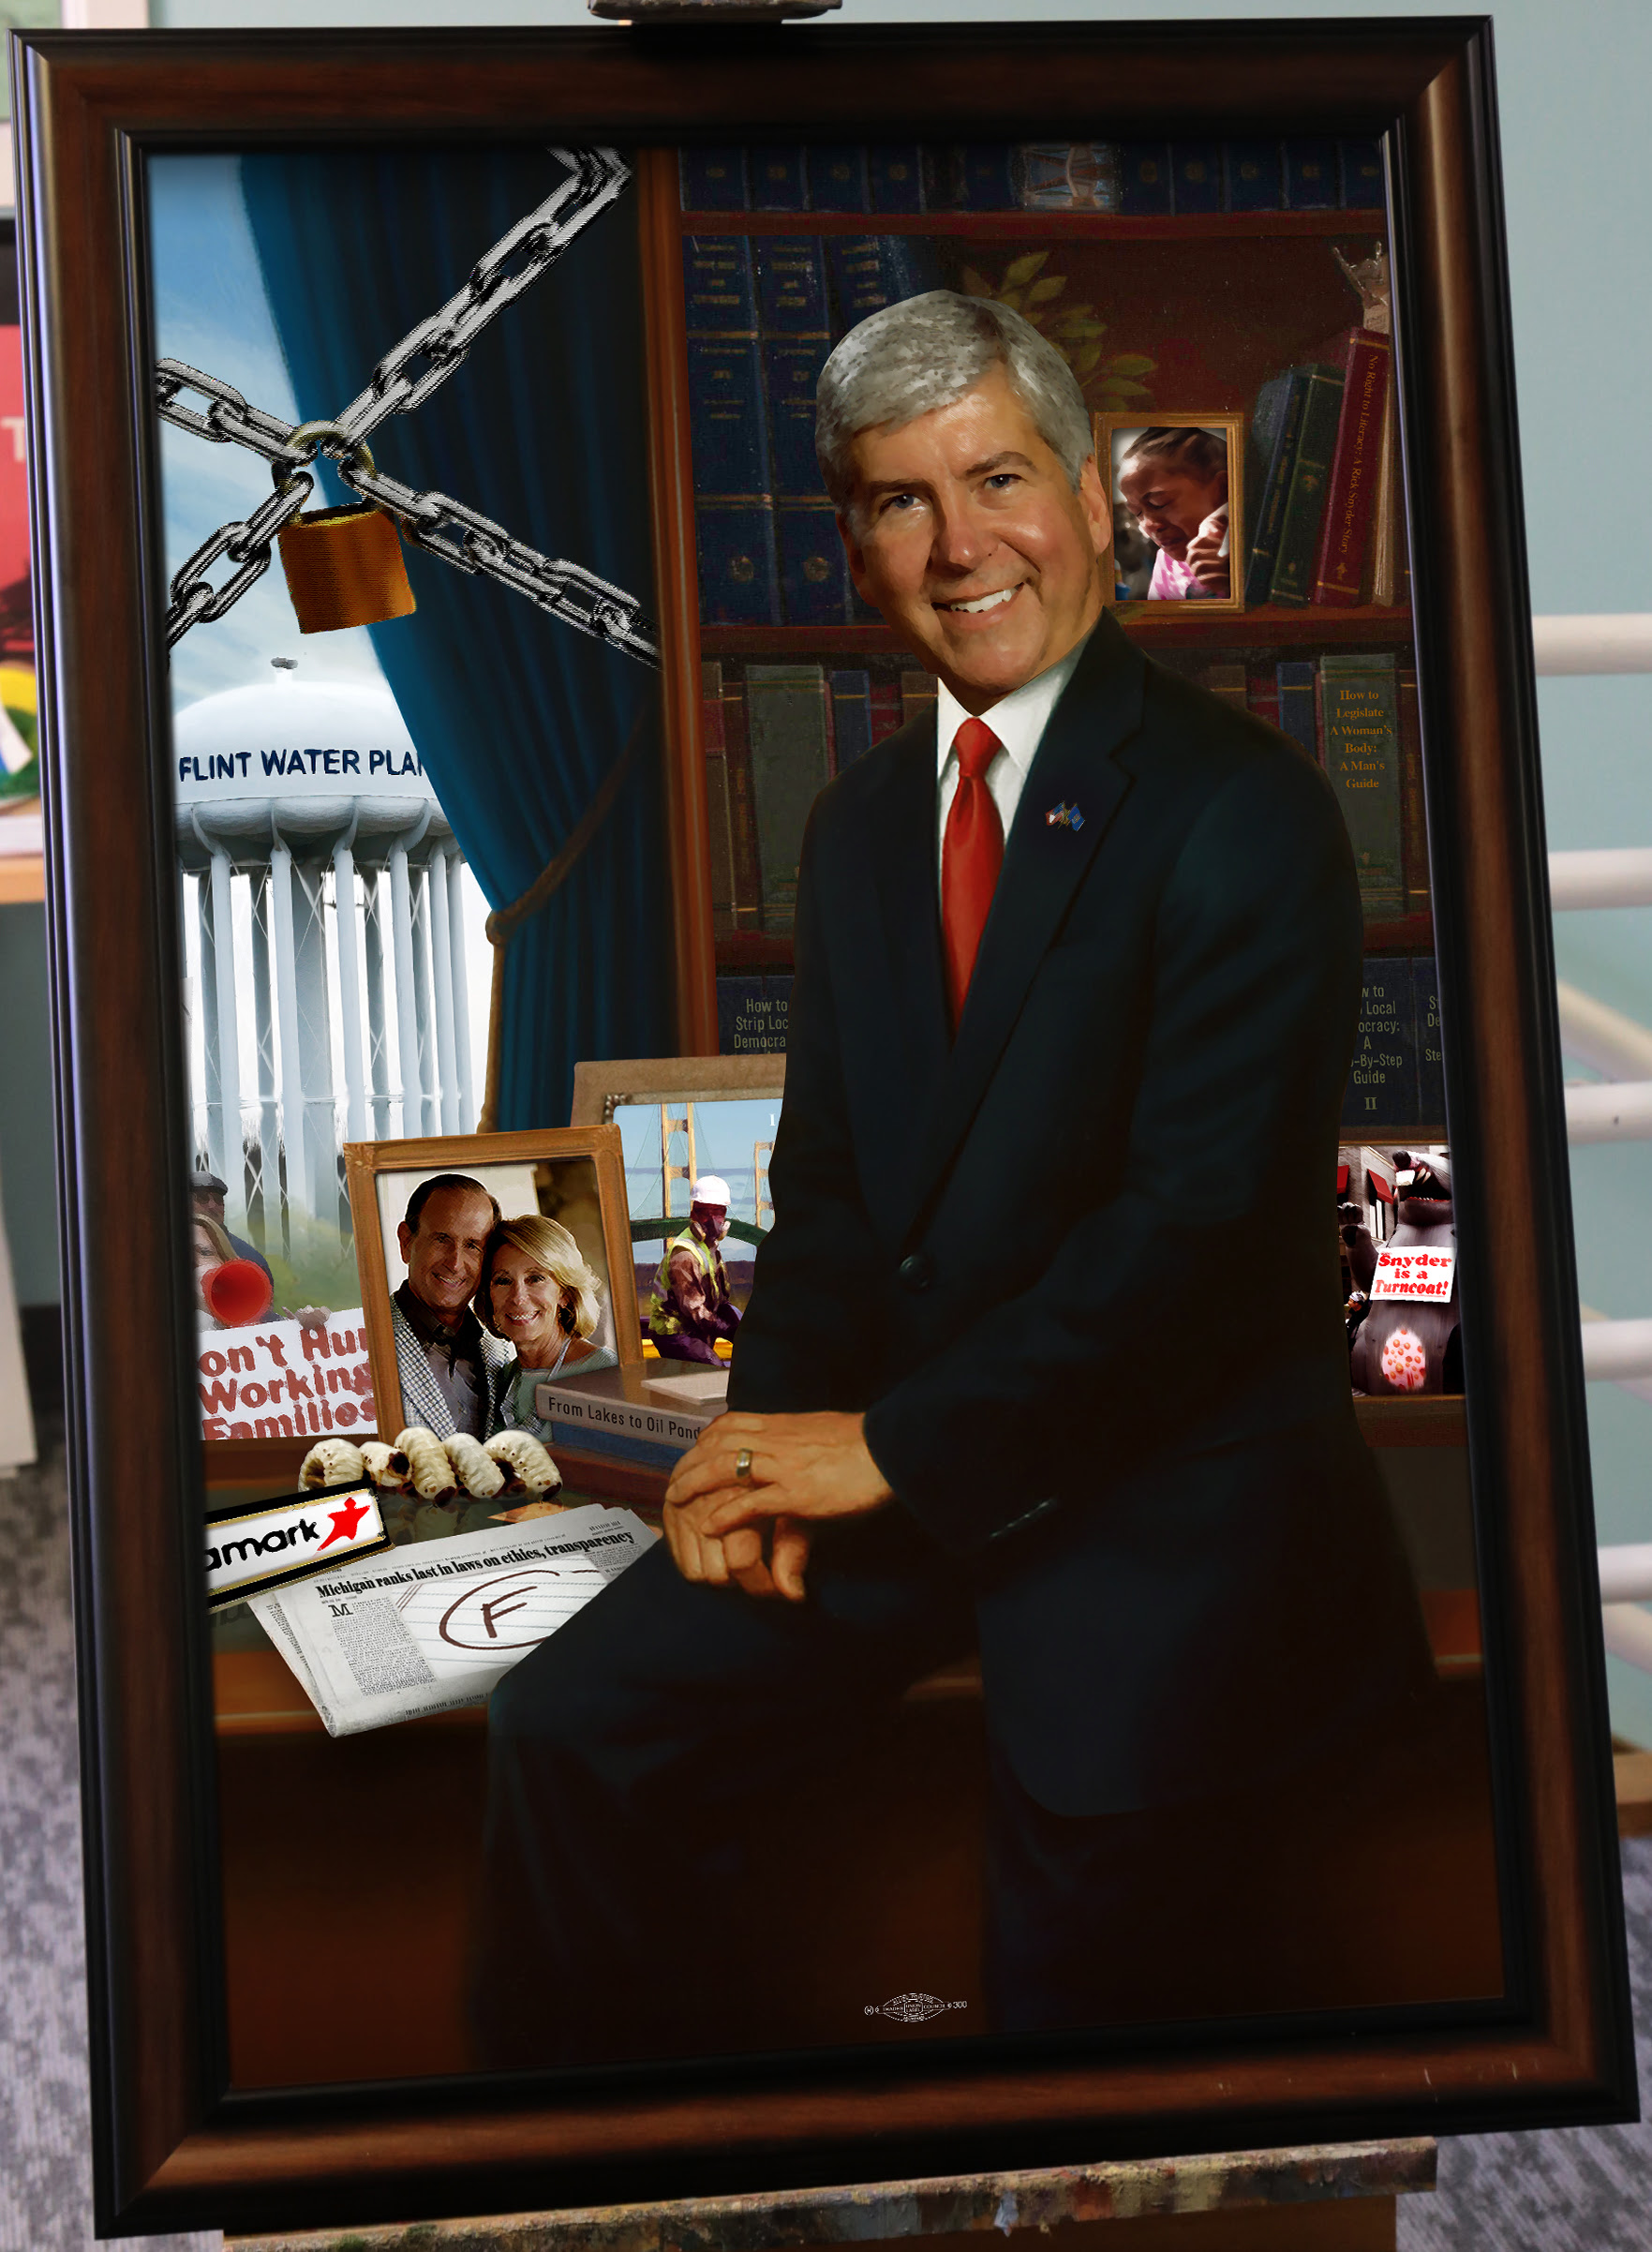 Progress Michigan Unveils the Official Unofficial Rick Snyder Gubernatorial Portrait